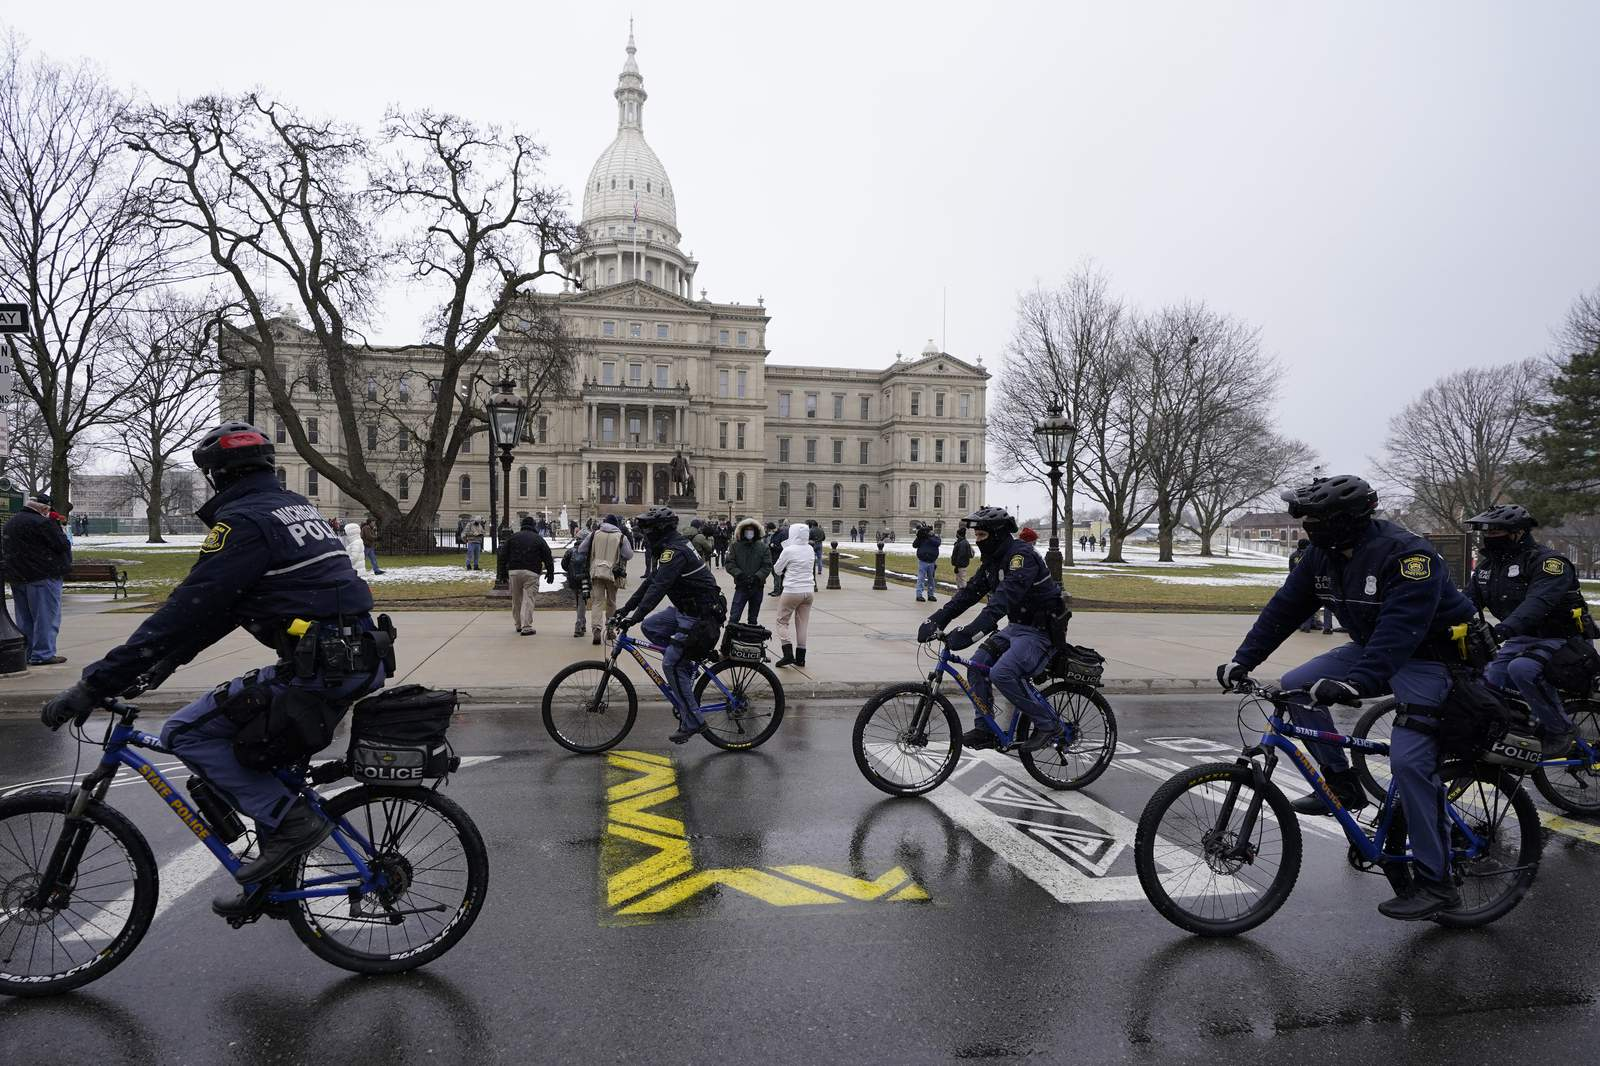 Michigan State Police patrol the perimeter of the State Capitol, Sunday, Jan. 17, 2021, in Lansing, Mich. (AP Photo/Carlos Osorio)